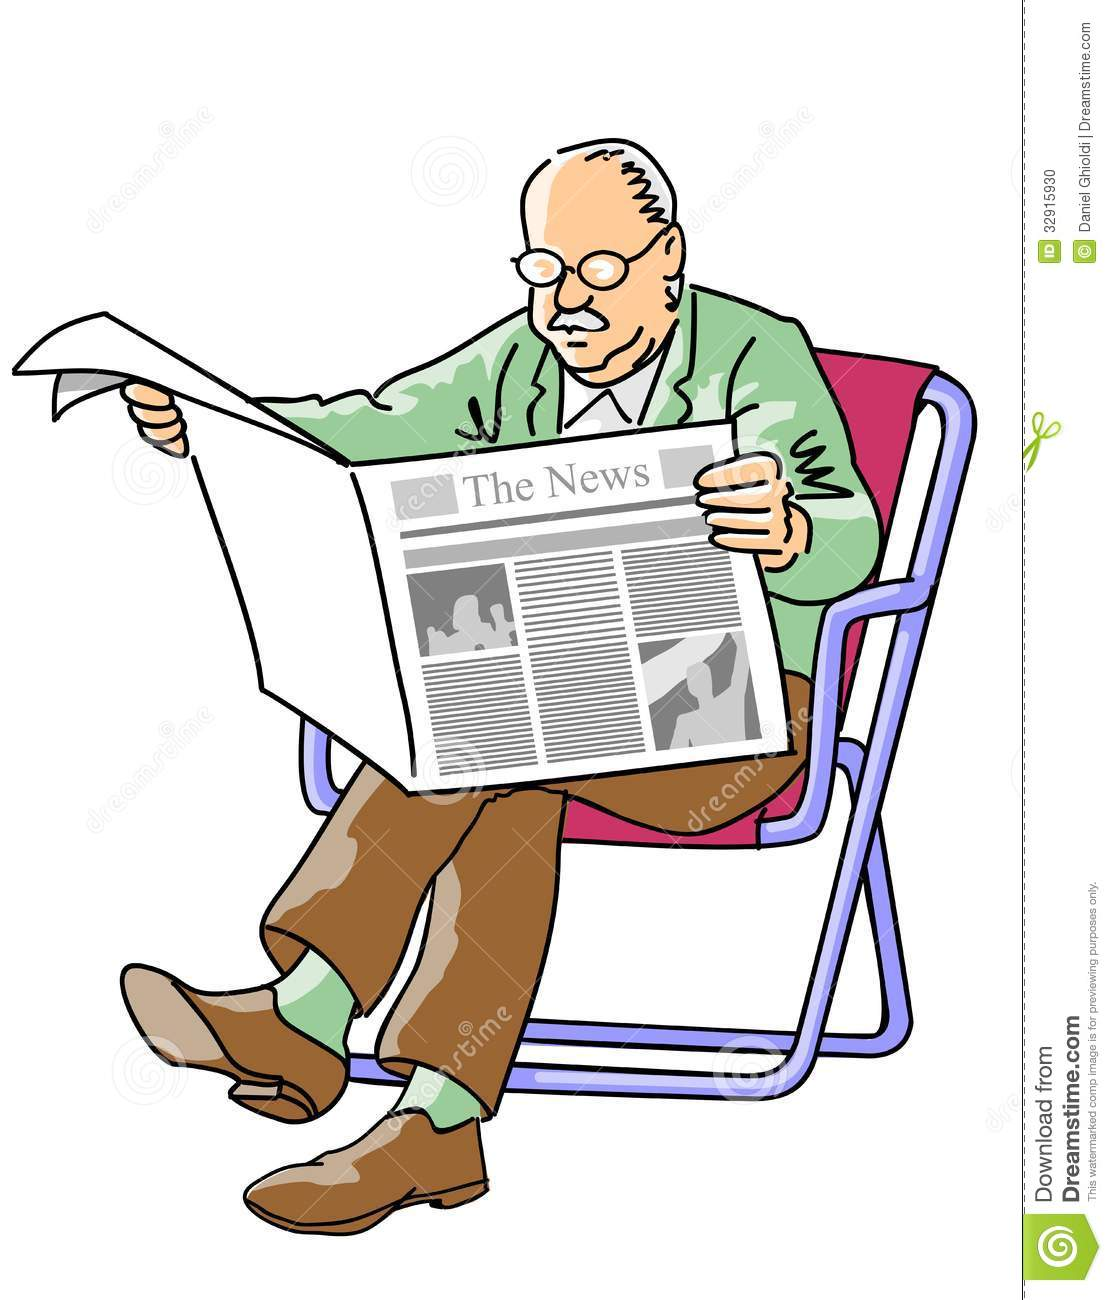 grandfather reading the newspaper stock photo image of paper reading 32915930. Black Bedroom Furniture Sets. Home Design Ideas